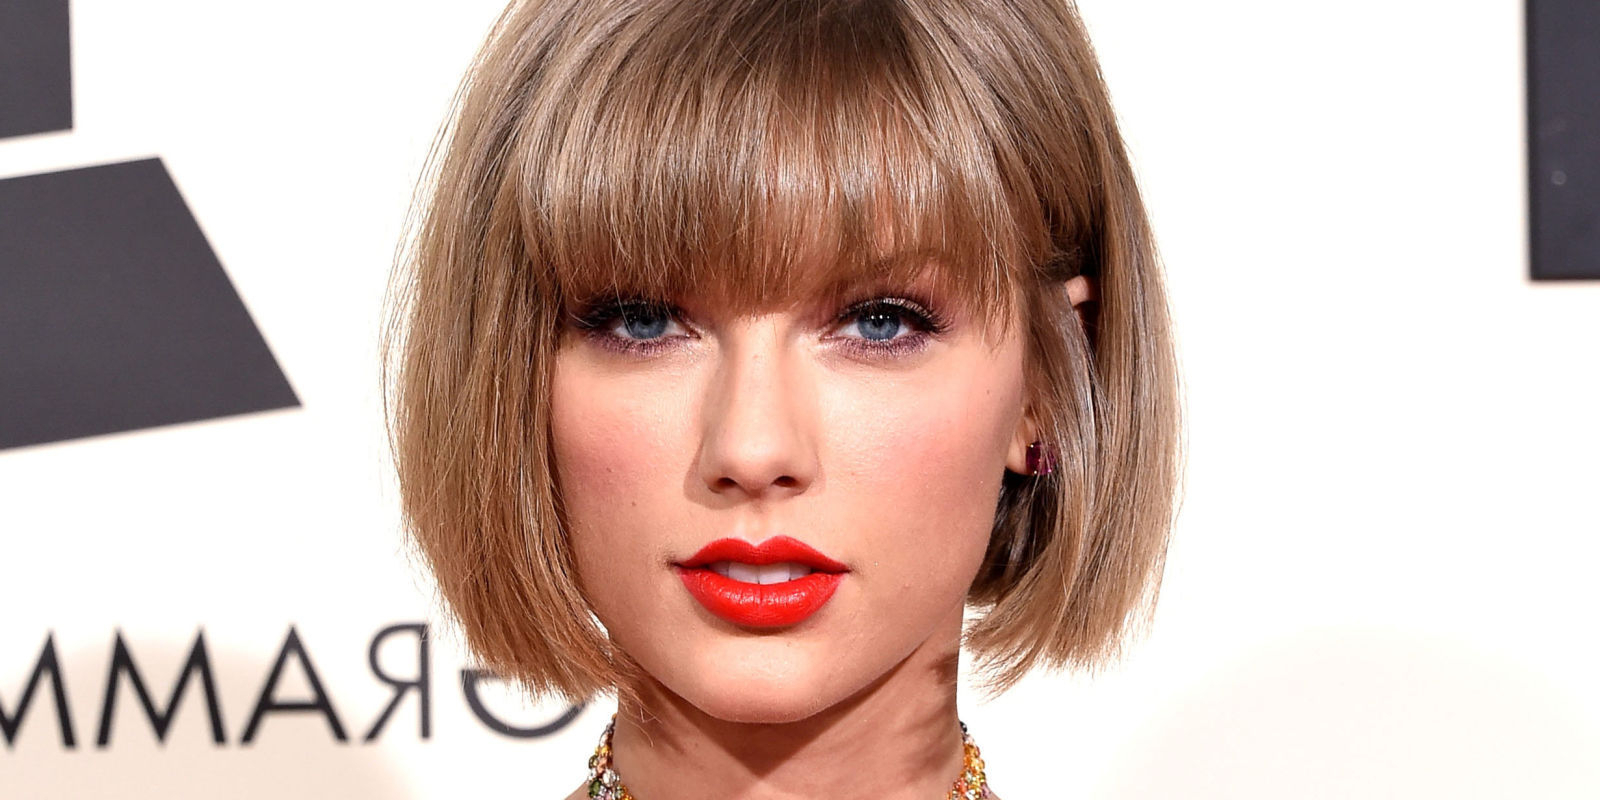 30 Bangs Hairstyles For Short Hair For Short Haircuts Without Bangs (View 14 of 25)